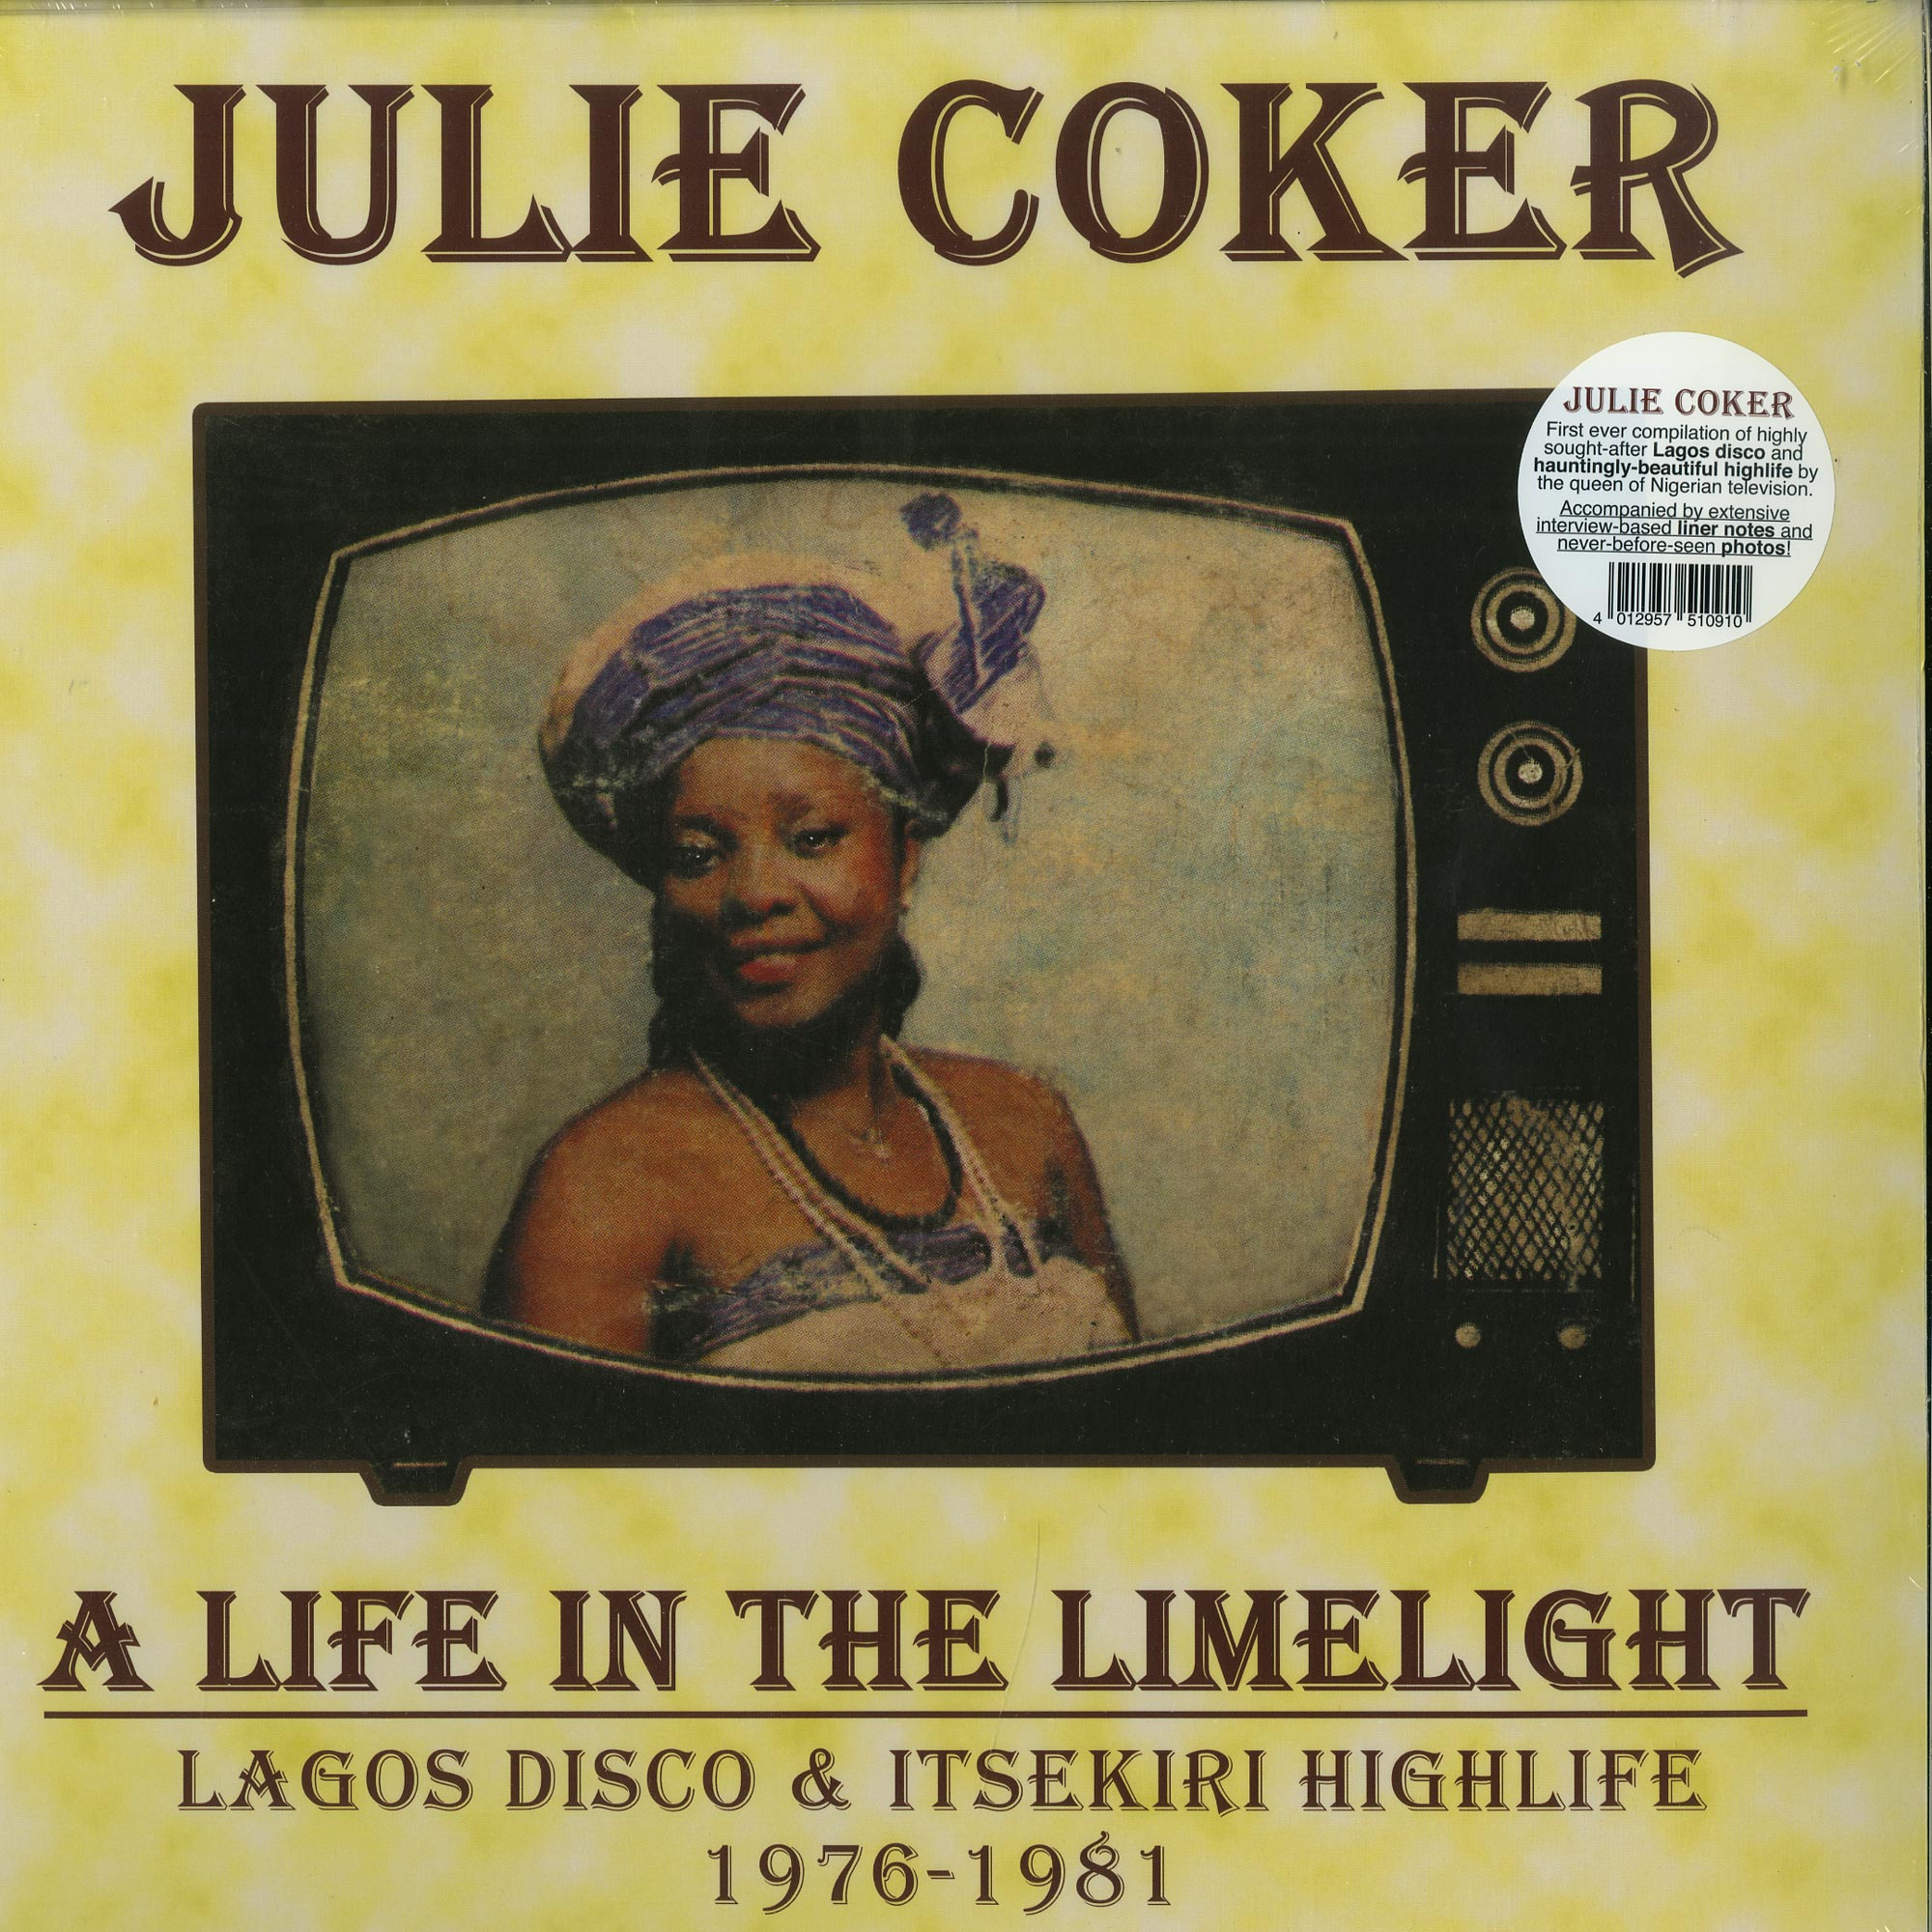 Julie Coker - A LIFE IN THE LIMELIGHT